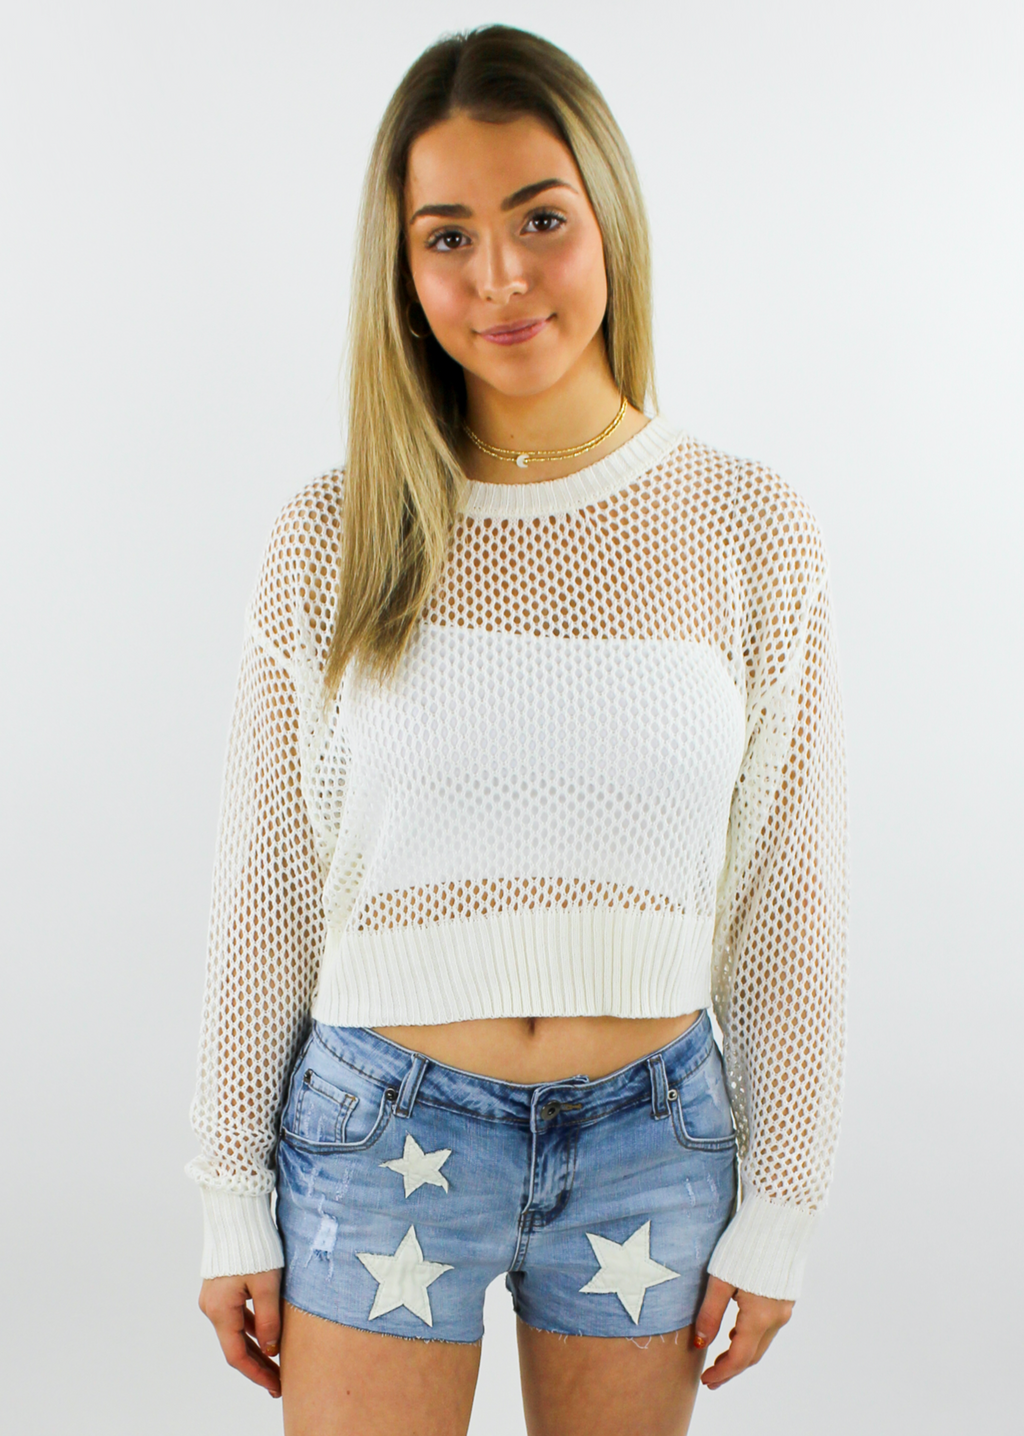 Thriller Sweater ★ White - Rock N Rags